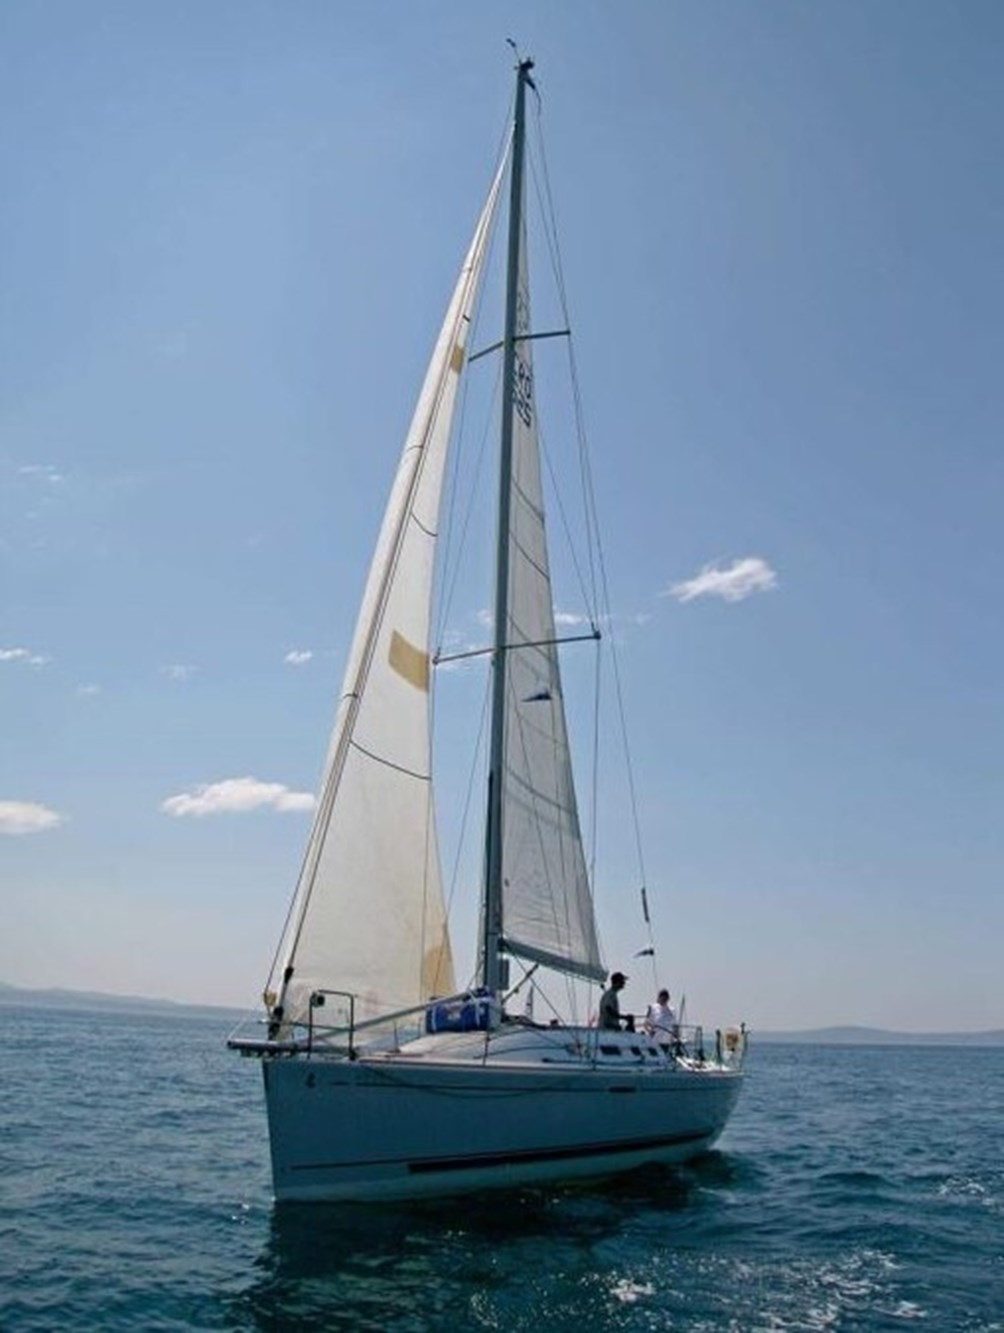 Beneteau First 40 7 > sailing boat for sale in Caribbean